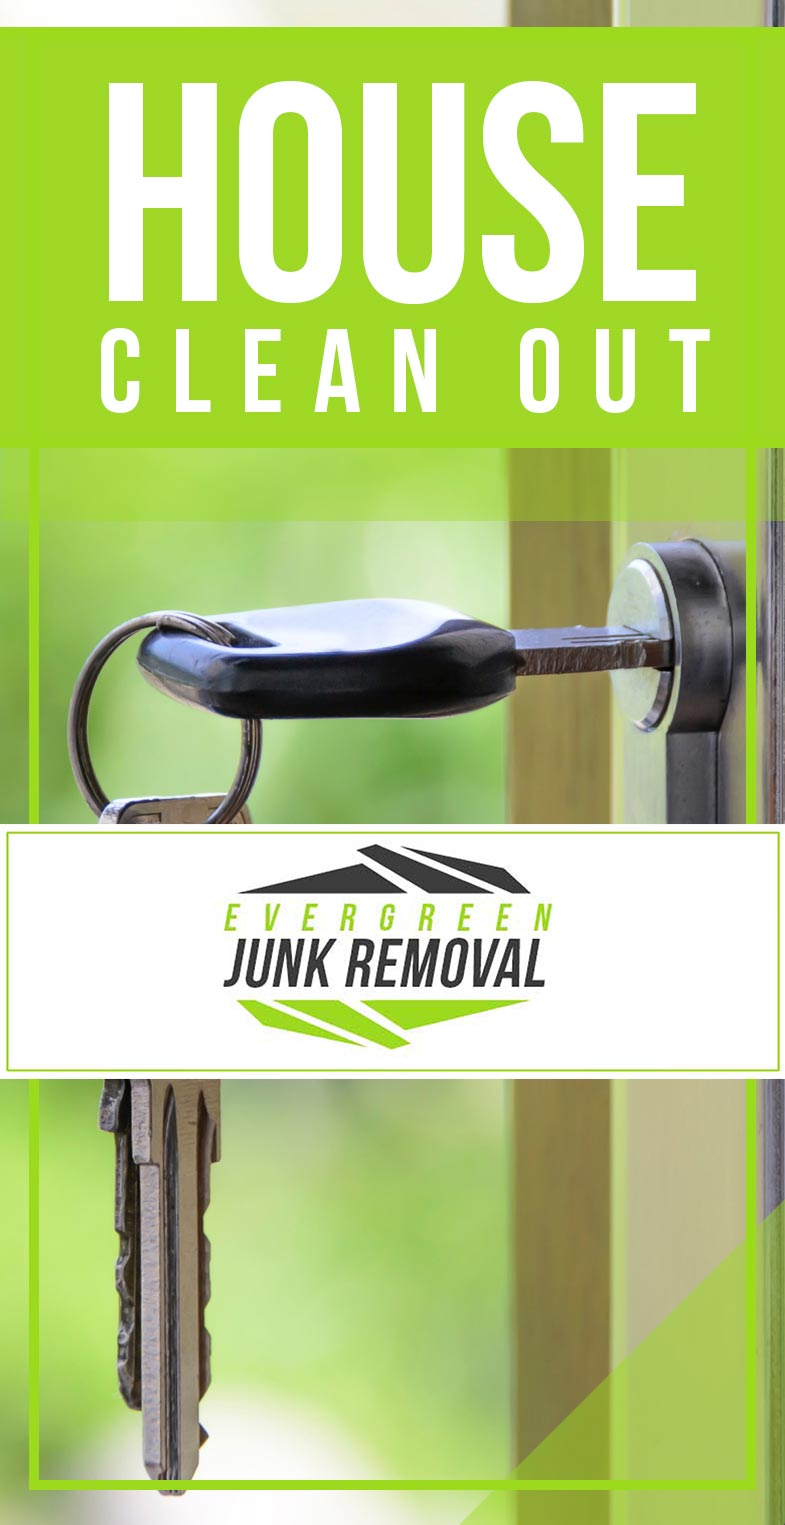 Junk Removal Royal Palm Beach House Clean Out